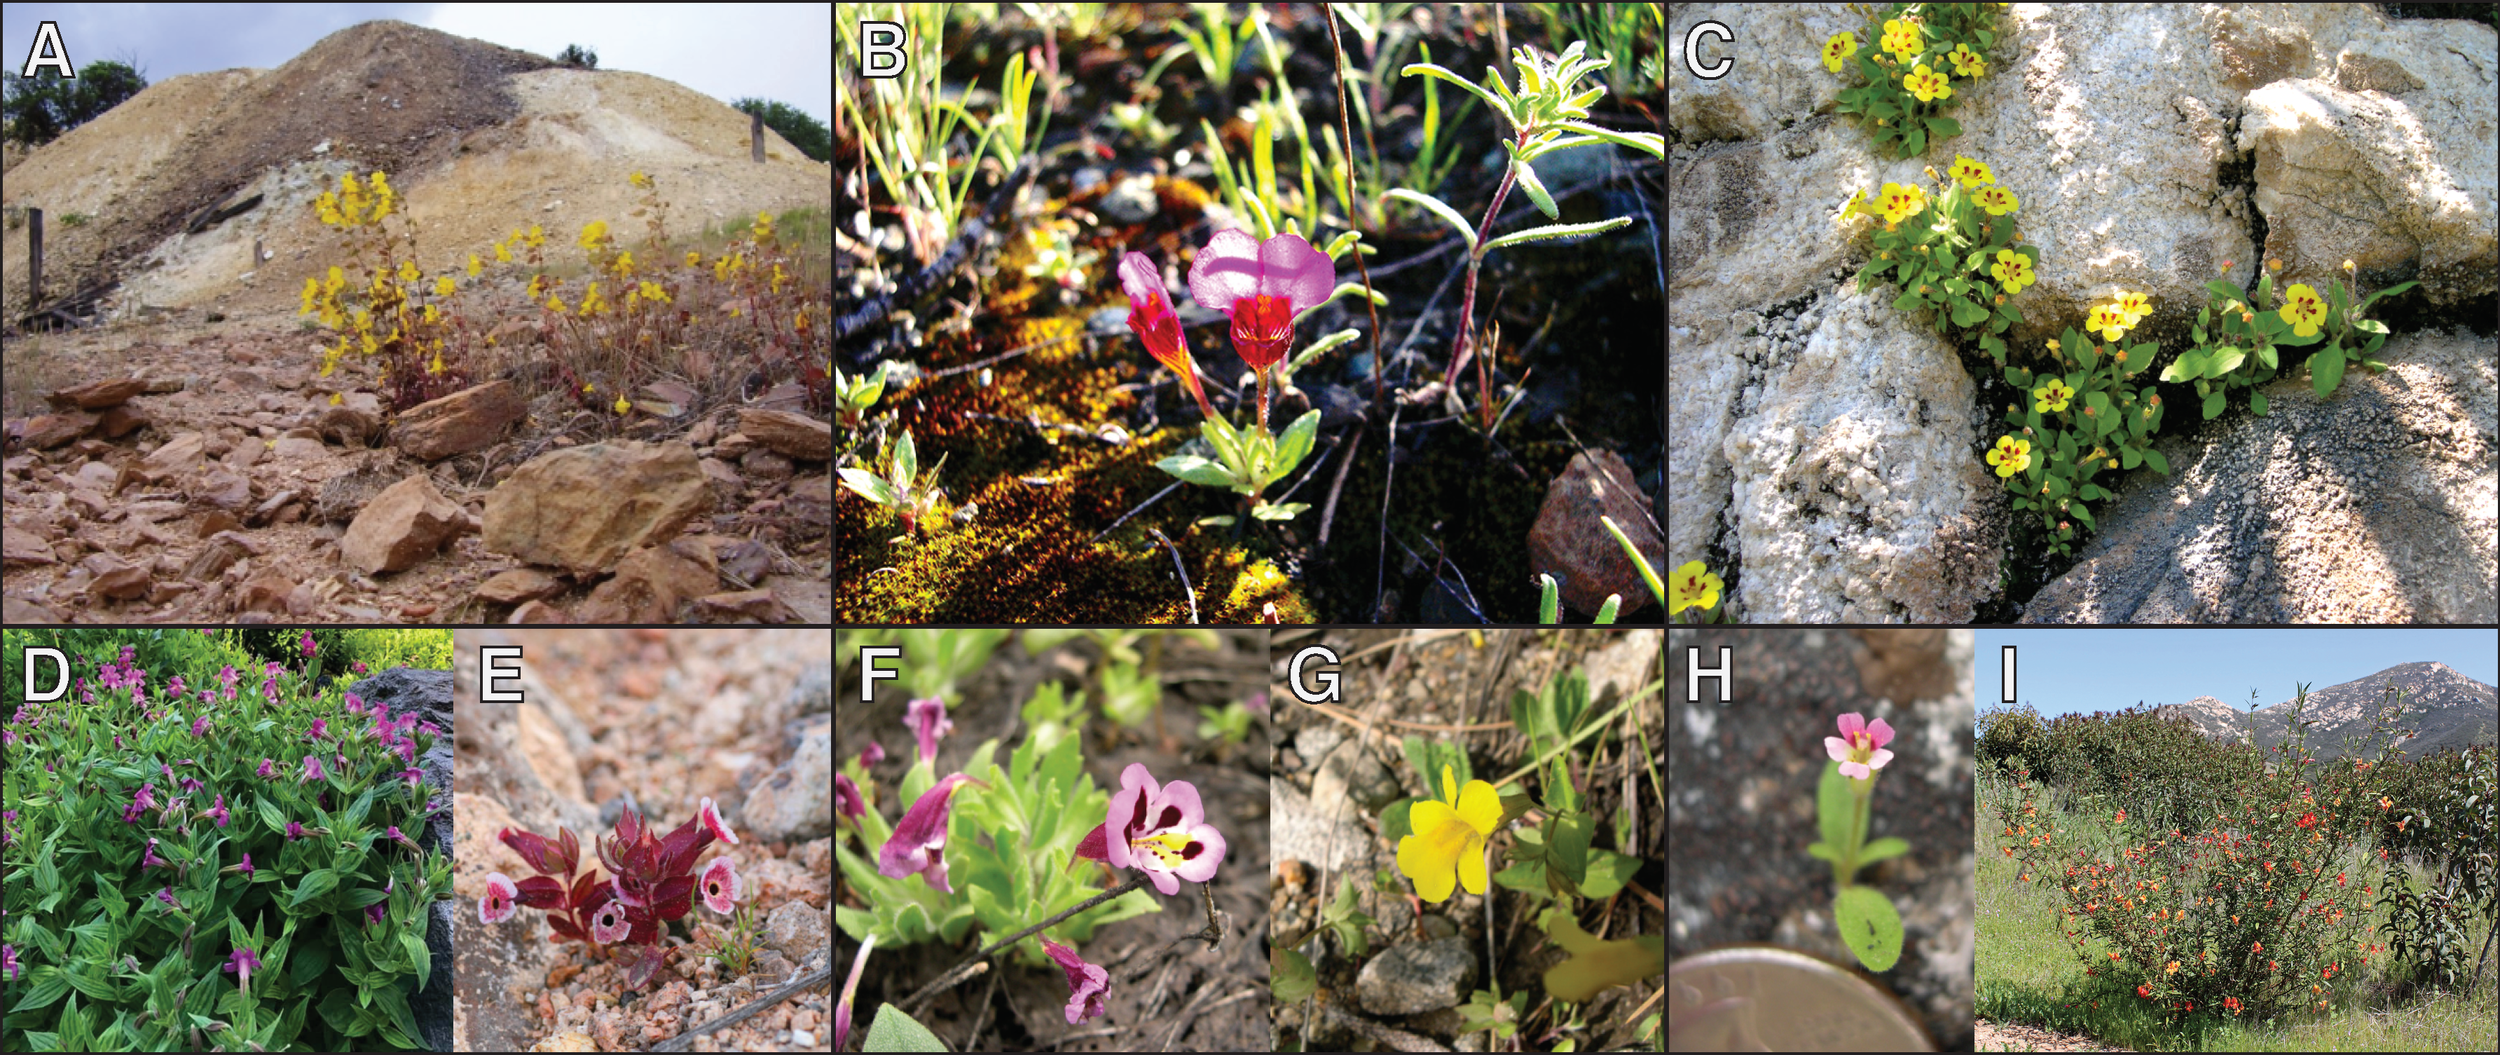 A sampling of the tremendous diversity found in the genus  Mimulus . Top row are edaphic specialists; e.g. A)  M. guttatus  on copper mine tailings, B)  M. douglasii  on serpentine, C)  M. norrisii  on limestone.  Mimulus  can also be found across an astounding range of hydrological settings, spanning wetlands to deserts, e.g. D)  M. lewisii  along a creek in the Cascades, E)  M. mohavensis  outside of Barstow, CA in the Mojave Desert. Species can withstand vastly different temperature regimes, e.g. F)  M. tricolor  growing near sea level in a remnant vernal pool of the central valley, G)  M. tilingii  growing in the subalpine zone of the Sierra Nevada at over 3,000 meters elevation.  Mimulus  also exhibits an impressive assortment of growth forms, from tiny herbaceous annuals to large woody perennial shrubs, e.g. H)  M. breweri , a diminutive self-fertilizing annual (quarter for scale), I)  M. aurantiacus , a large woody shrub that is a dominant member of many chaparral communities. Photo in panel A by K. Wright (from Presgraves 2013), all other photos by J. Sobel.